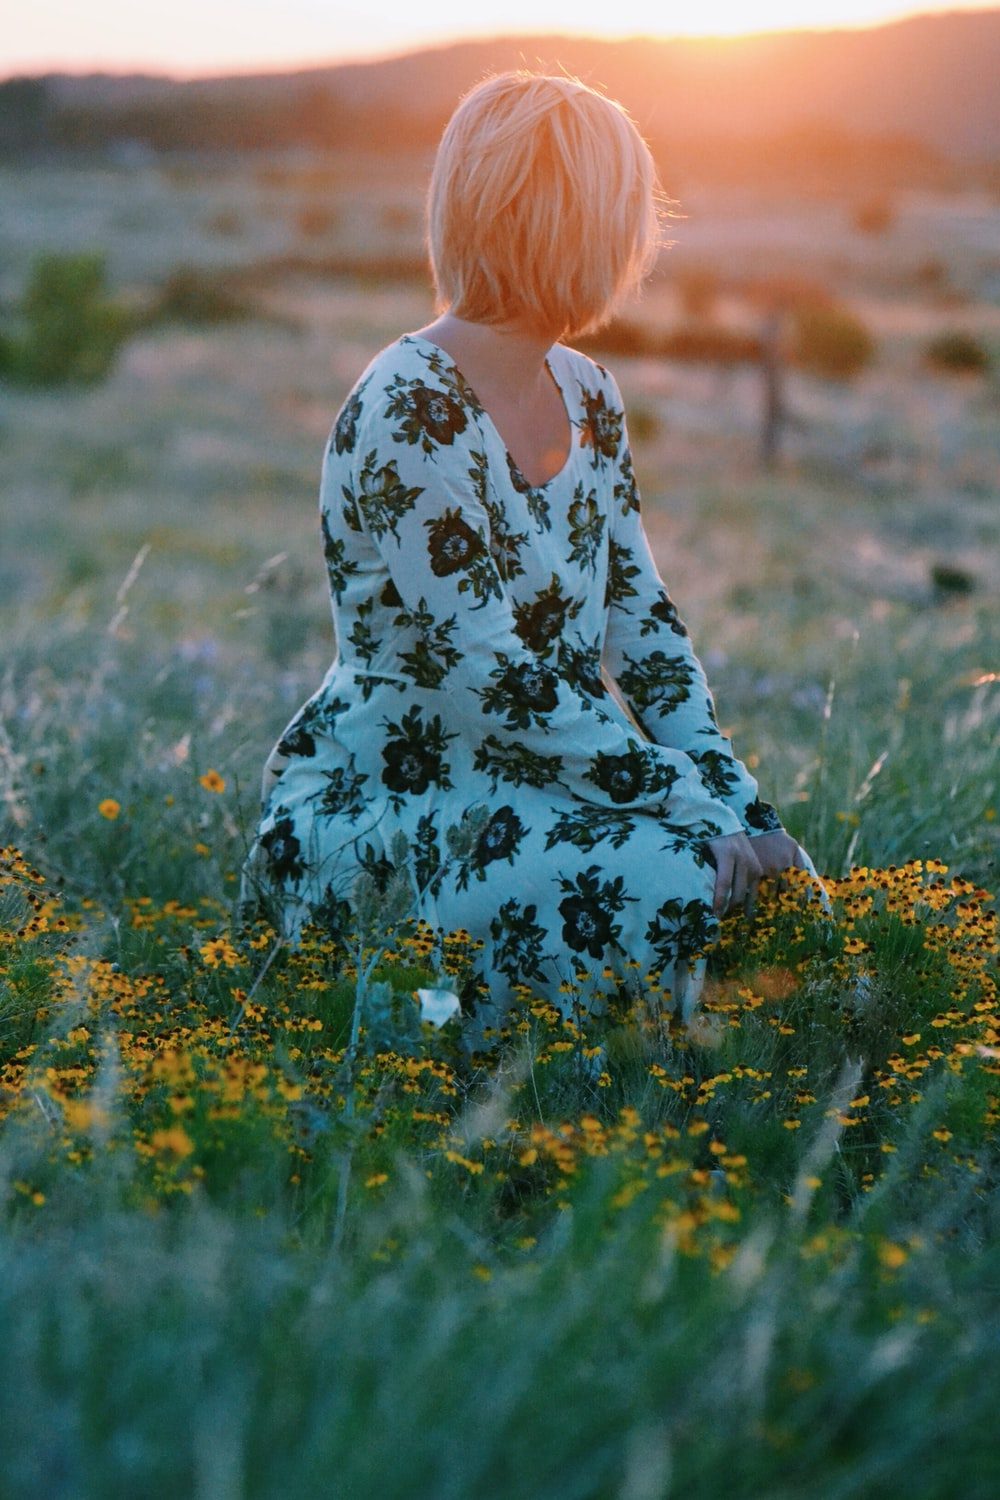 woman sitting on yellow flower field during daytime